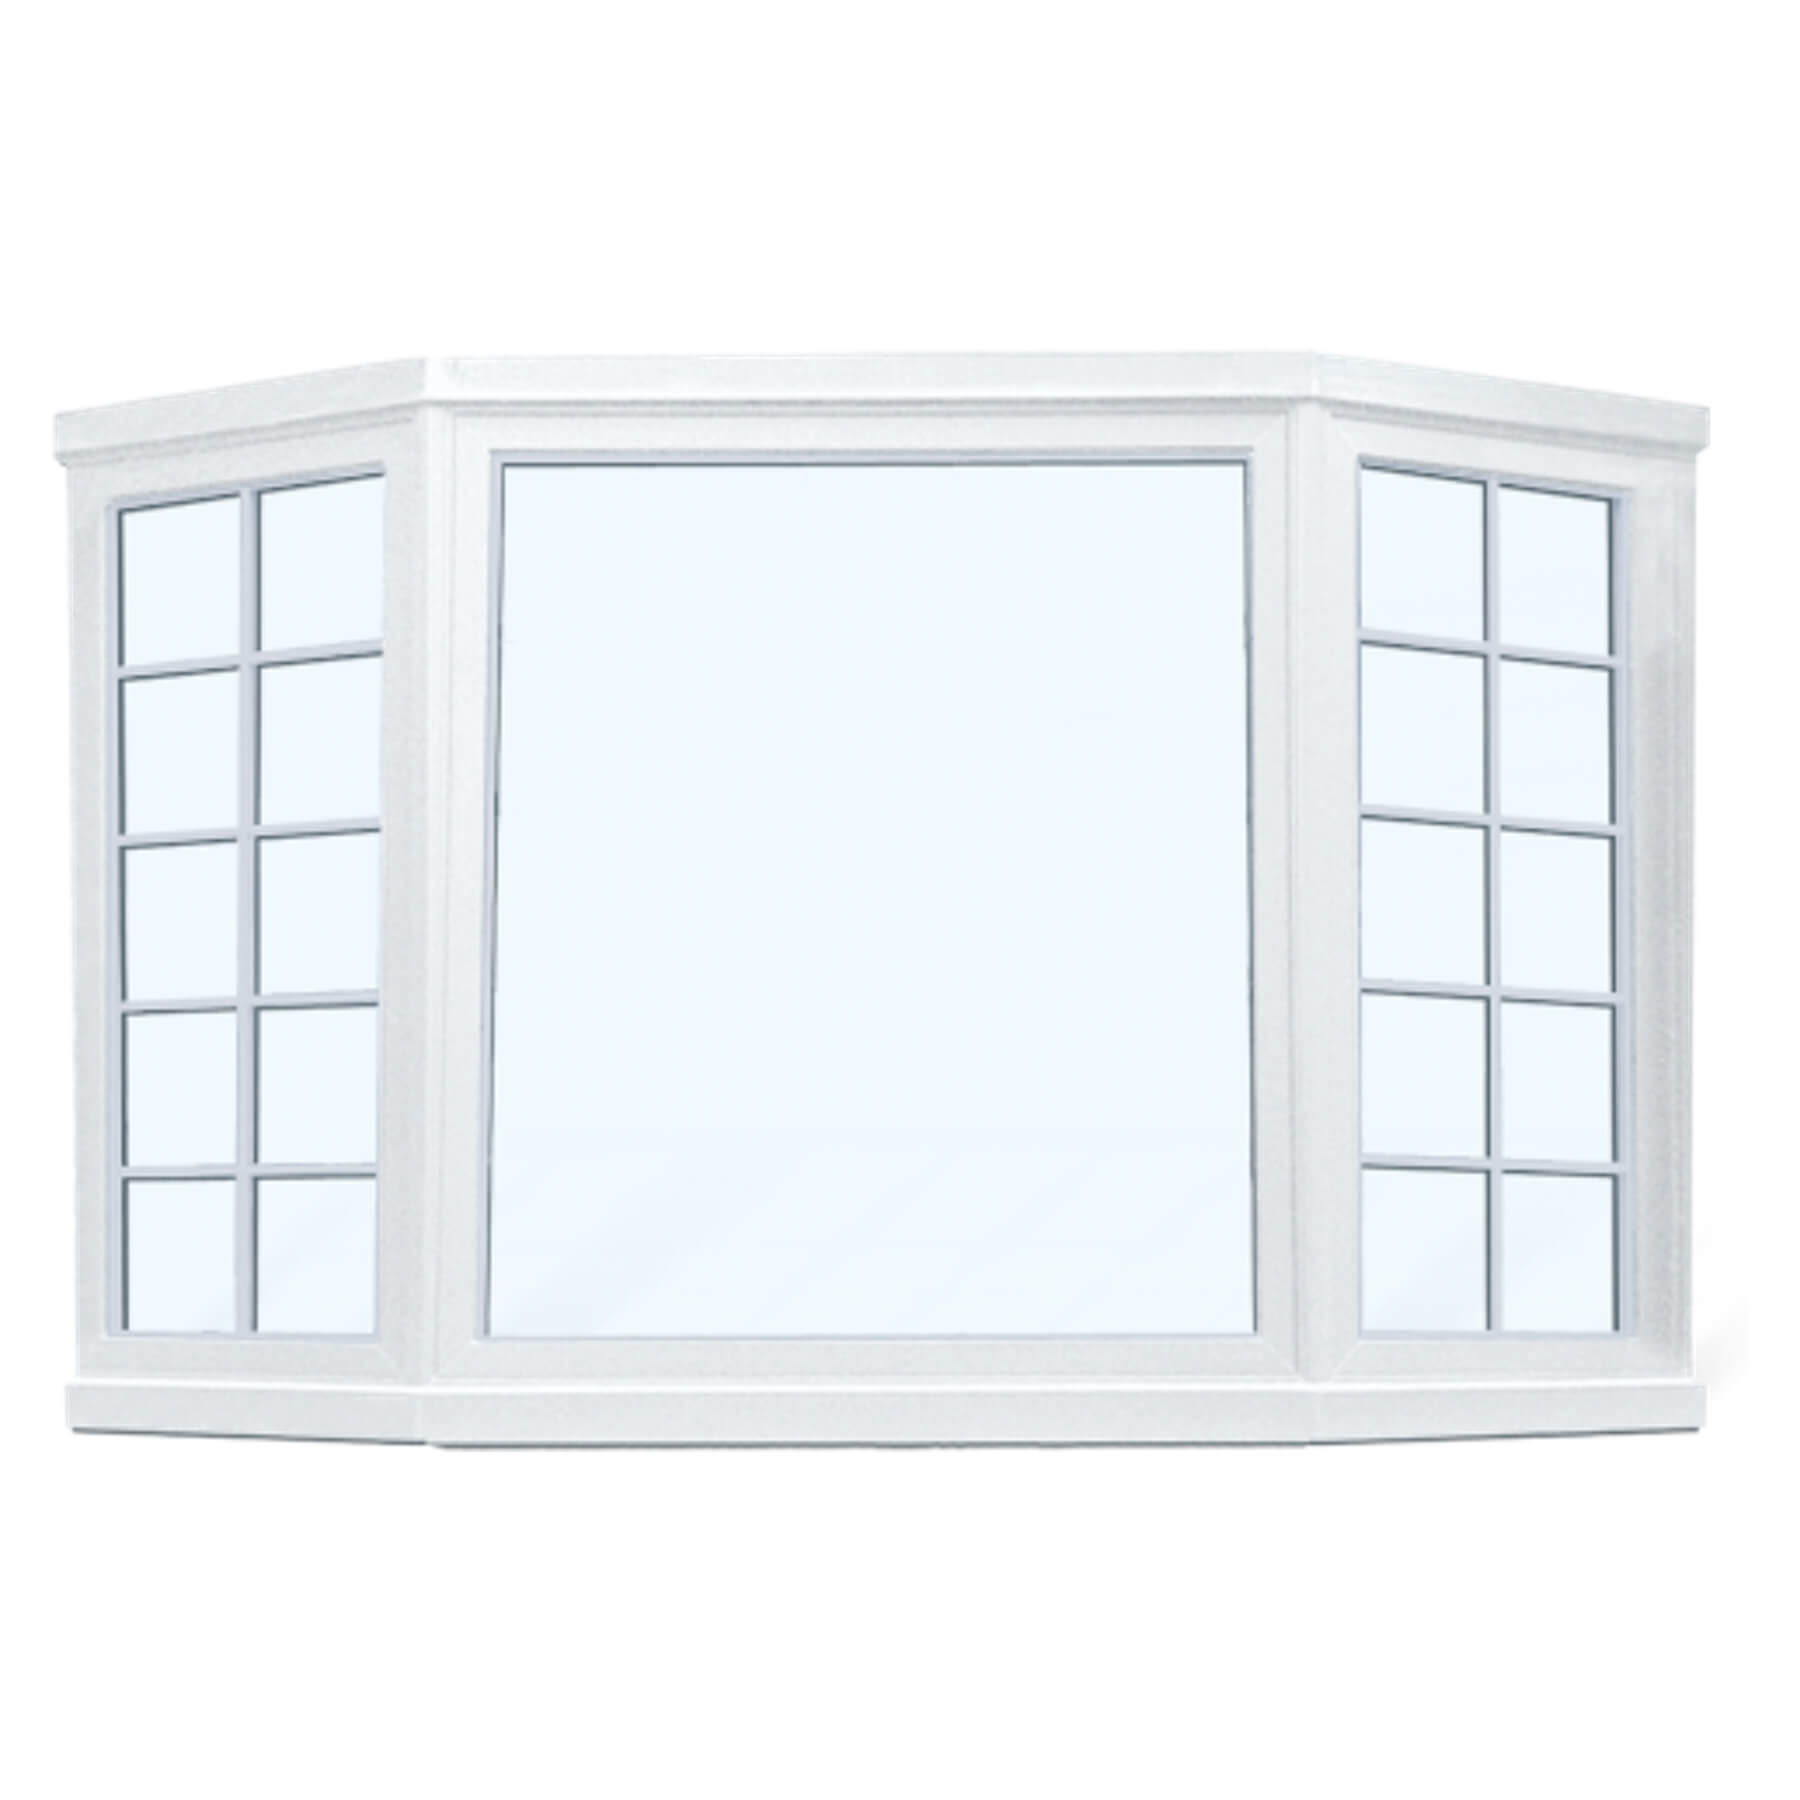 Window pane types - Replacement Windows And Vinyl Replacement Windows All Types